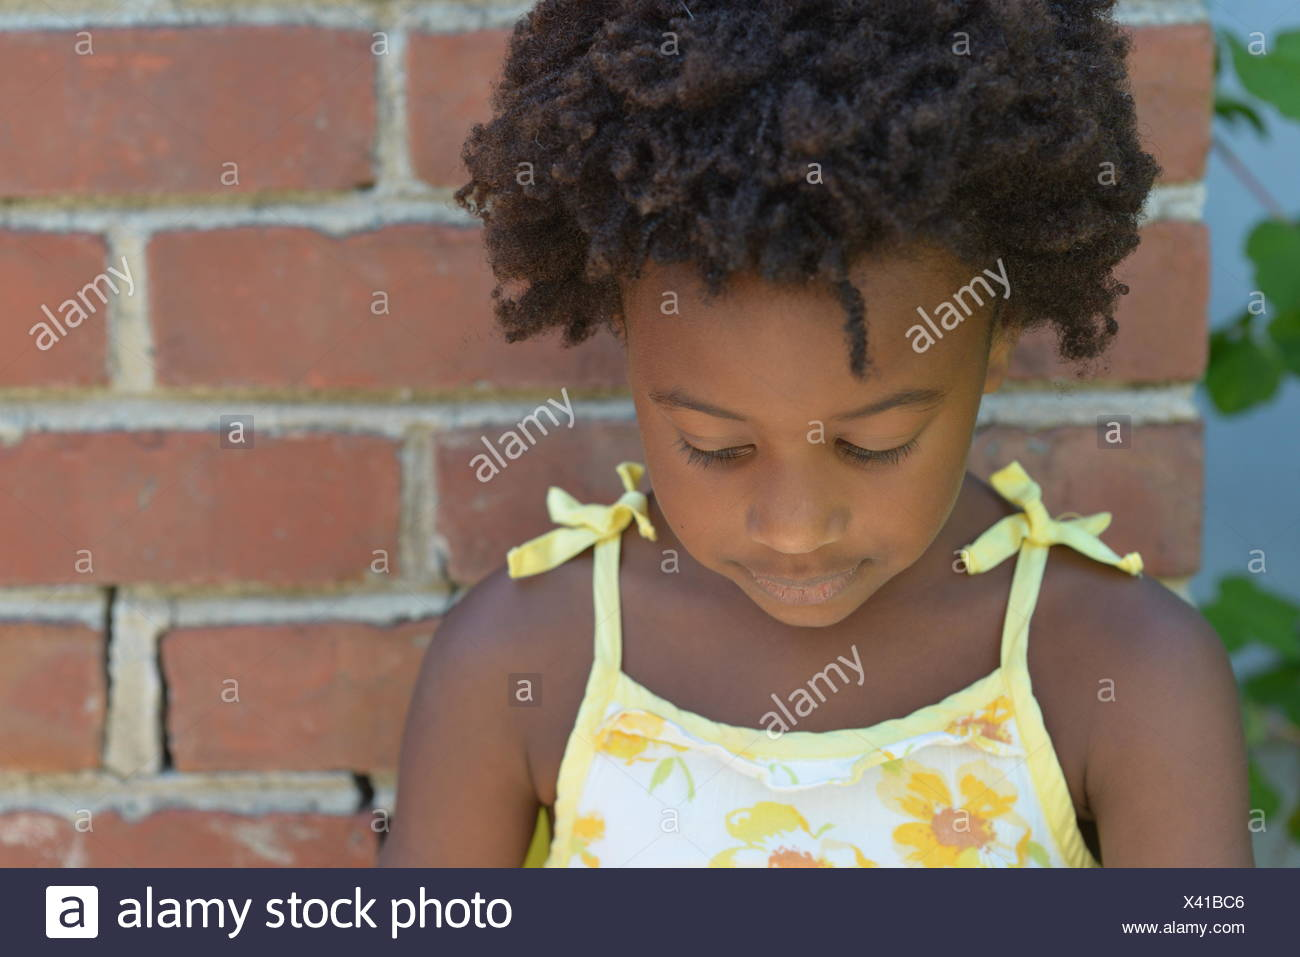 Girls standing by a brick wall looking down - Stock Image